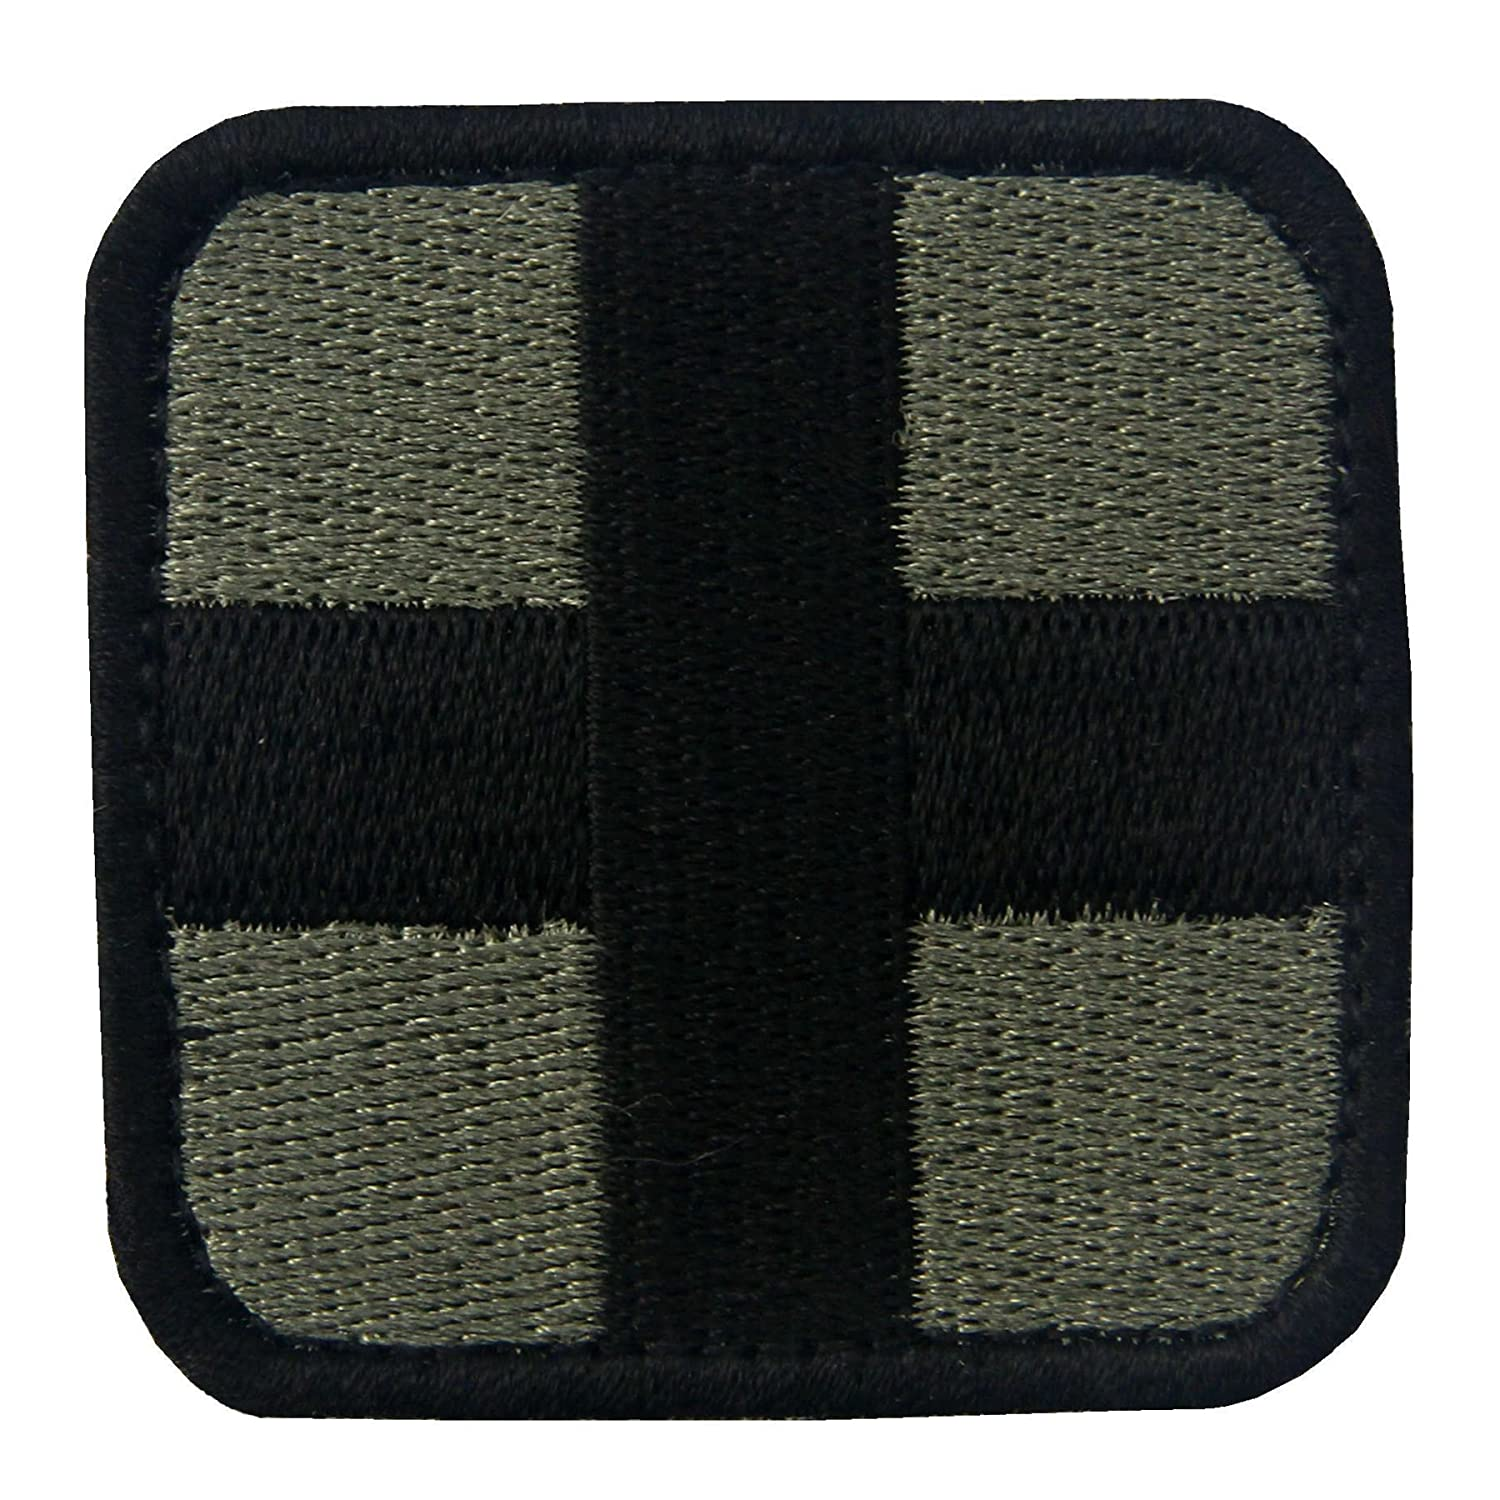 Darkgoldenrod EmbTao Embroidered Medic Cross Tactical Fastener Hook /& Loop Patch